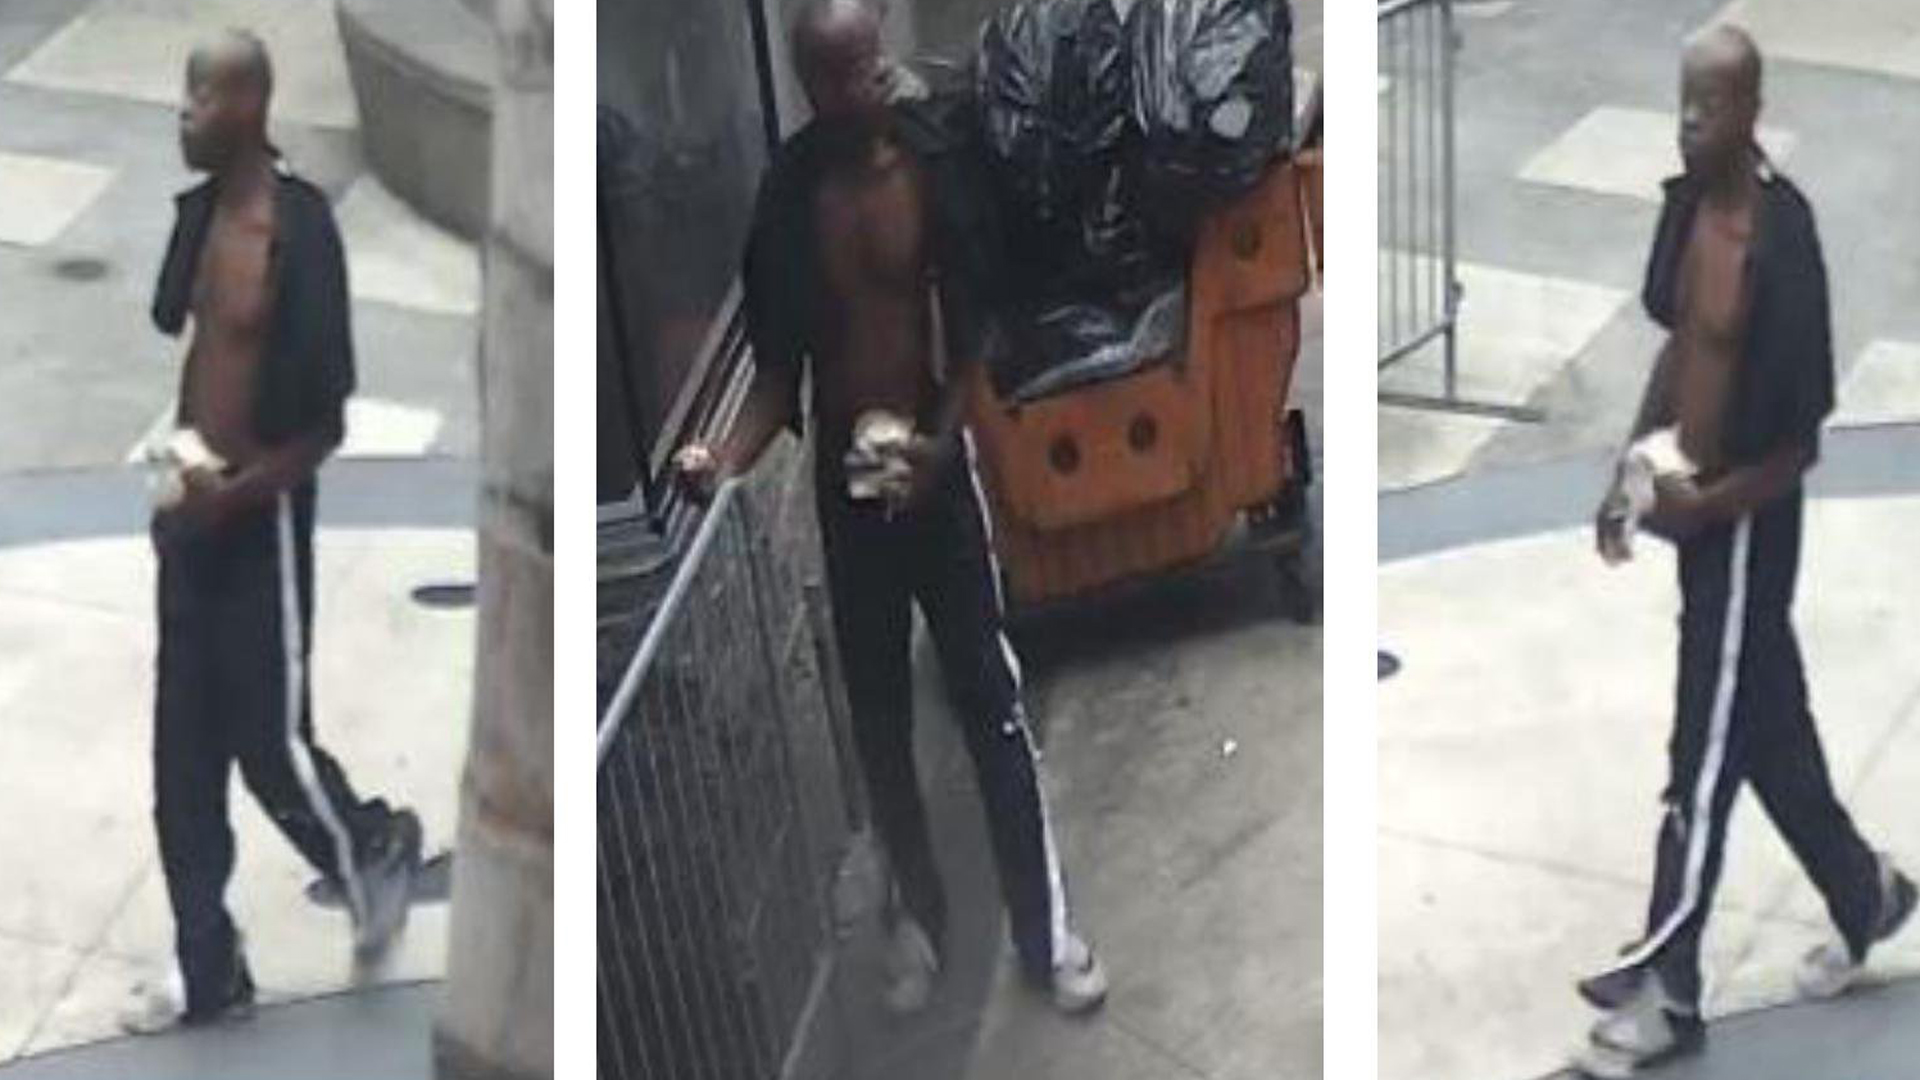 Police are seeking the man pictured in this photo in connection with the beating of a 76-year-old man at 6th and Spring streets in downtown Los Angeles on June 13, 2019. (Credit: Los Angeles Police Department)